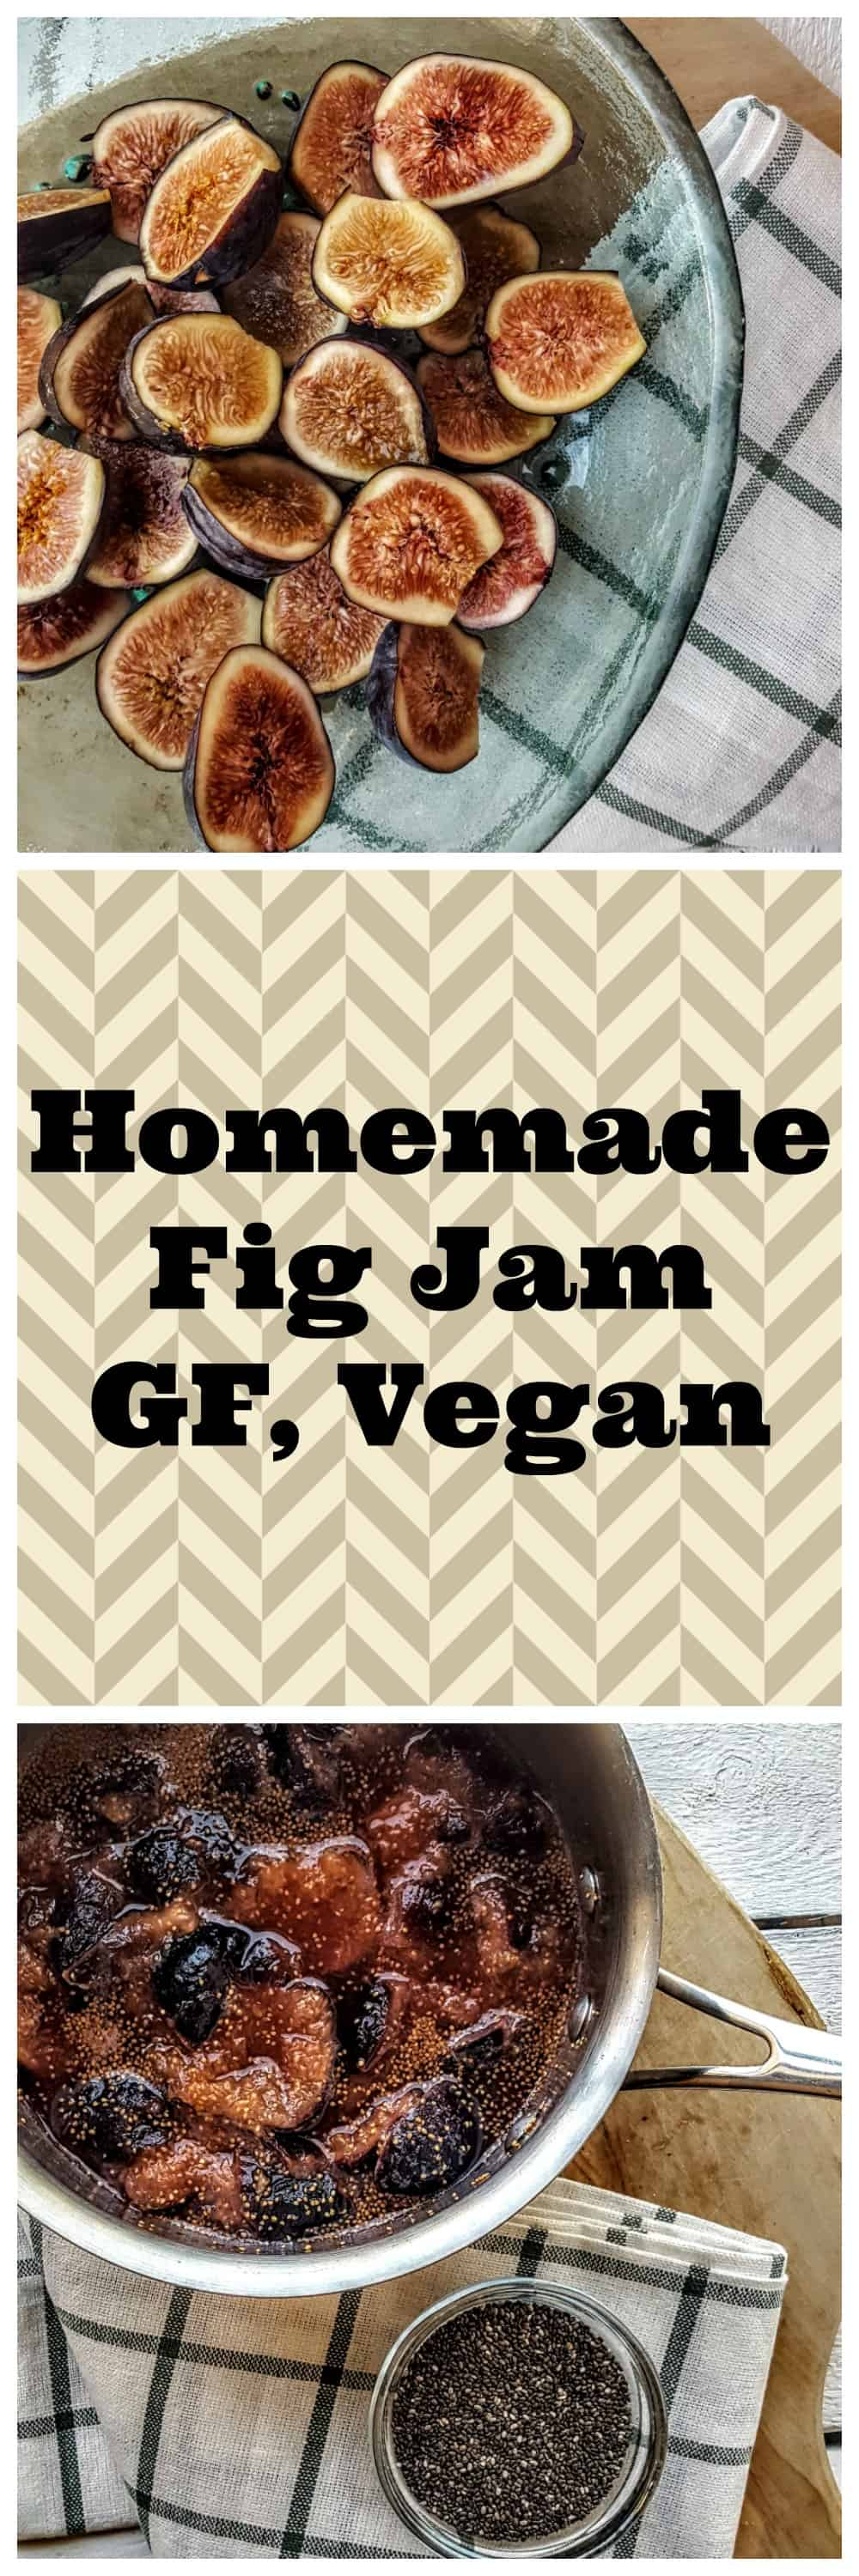 Homemade Fig Jam @shawsimpleswaps Perfect no added sugar, gluten free & 100% vegan option to make the ultimate PB & J!